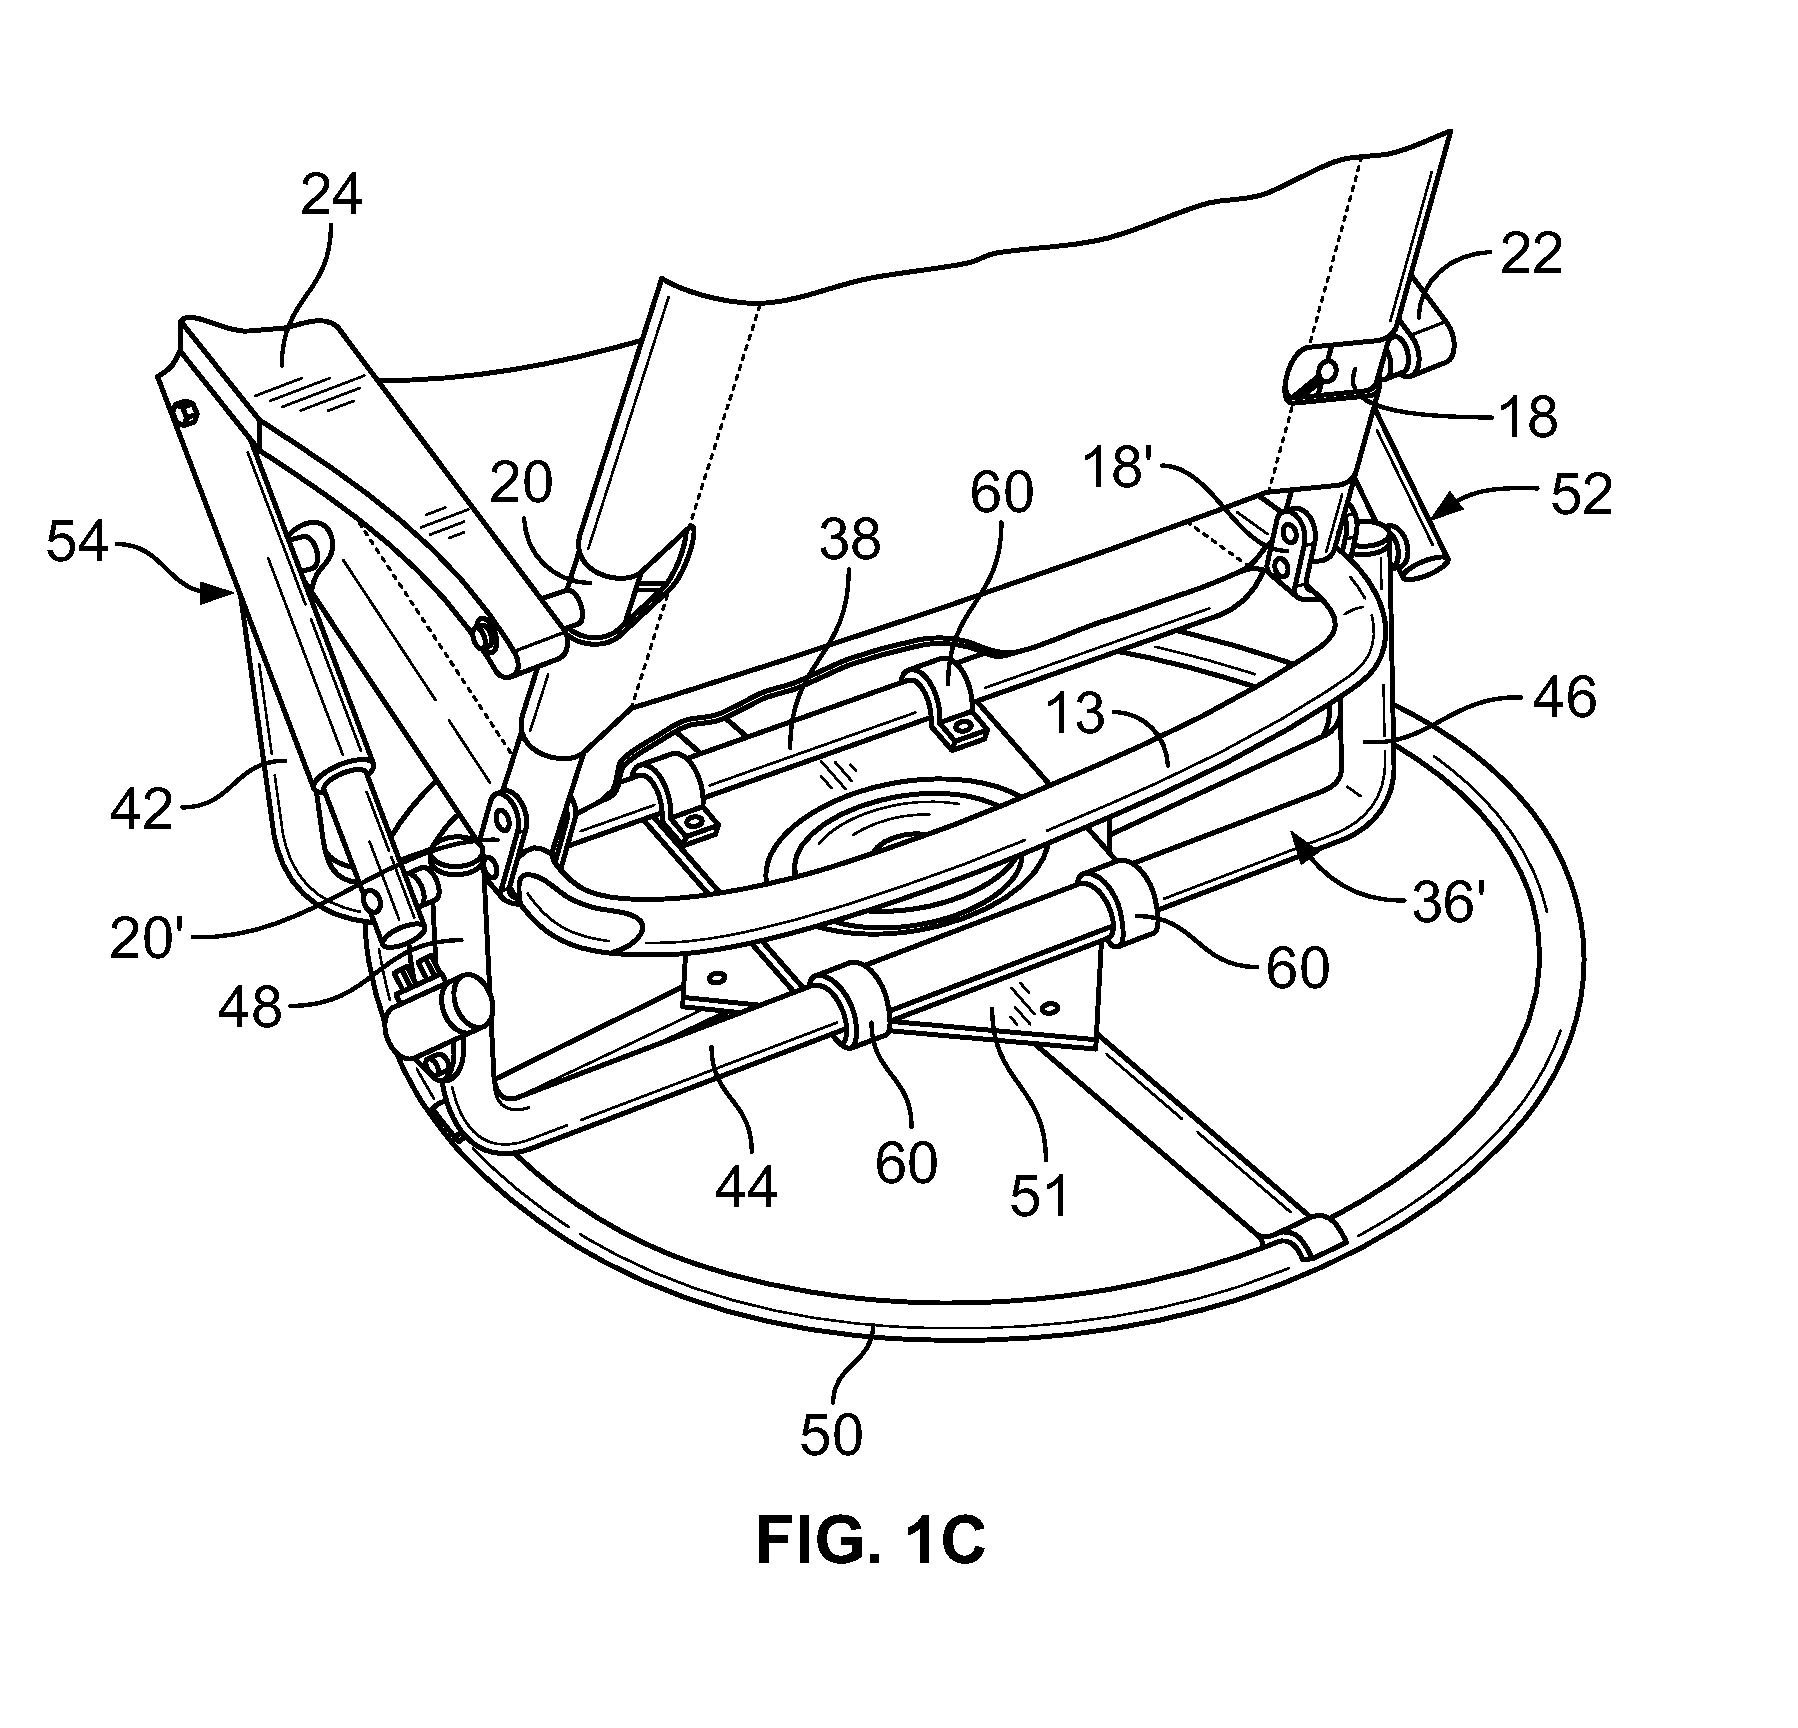 Patent US8167374 - Portable folding chair - Google Patents